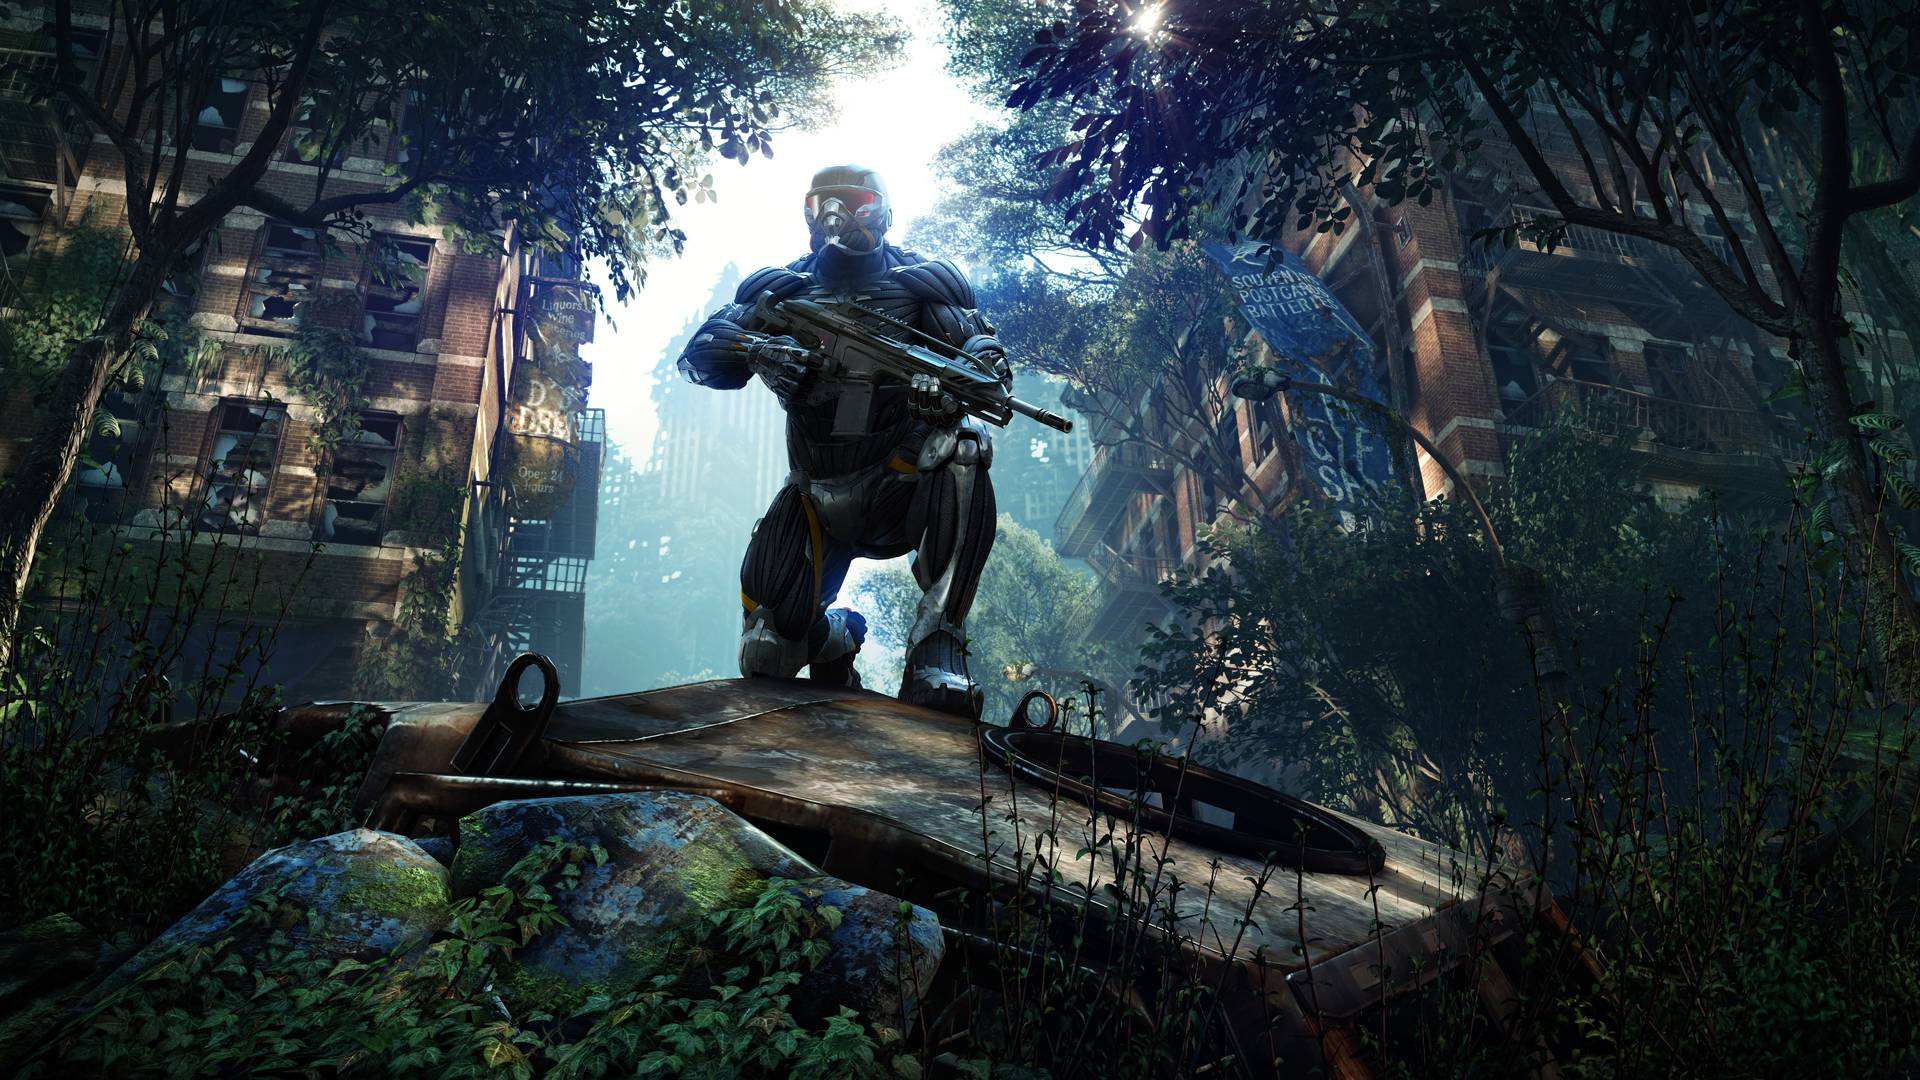 Crysis  Greath HD Game Wallpaper PC 1920x1080